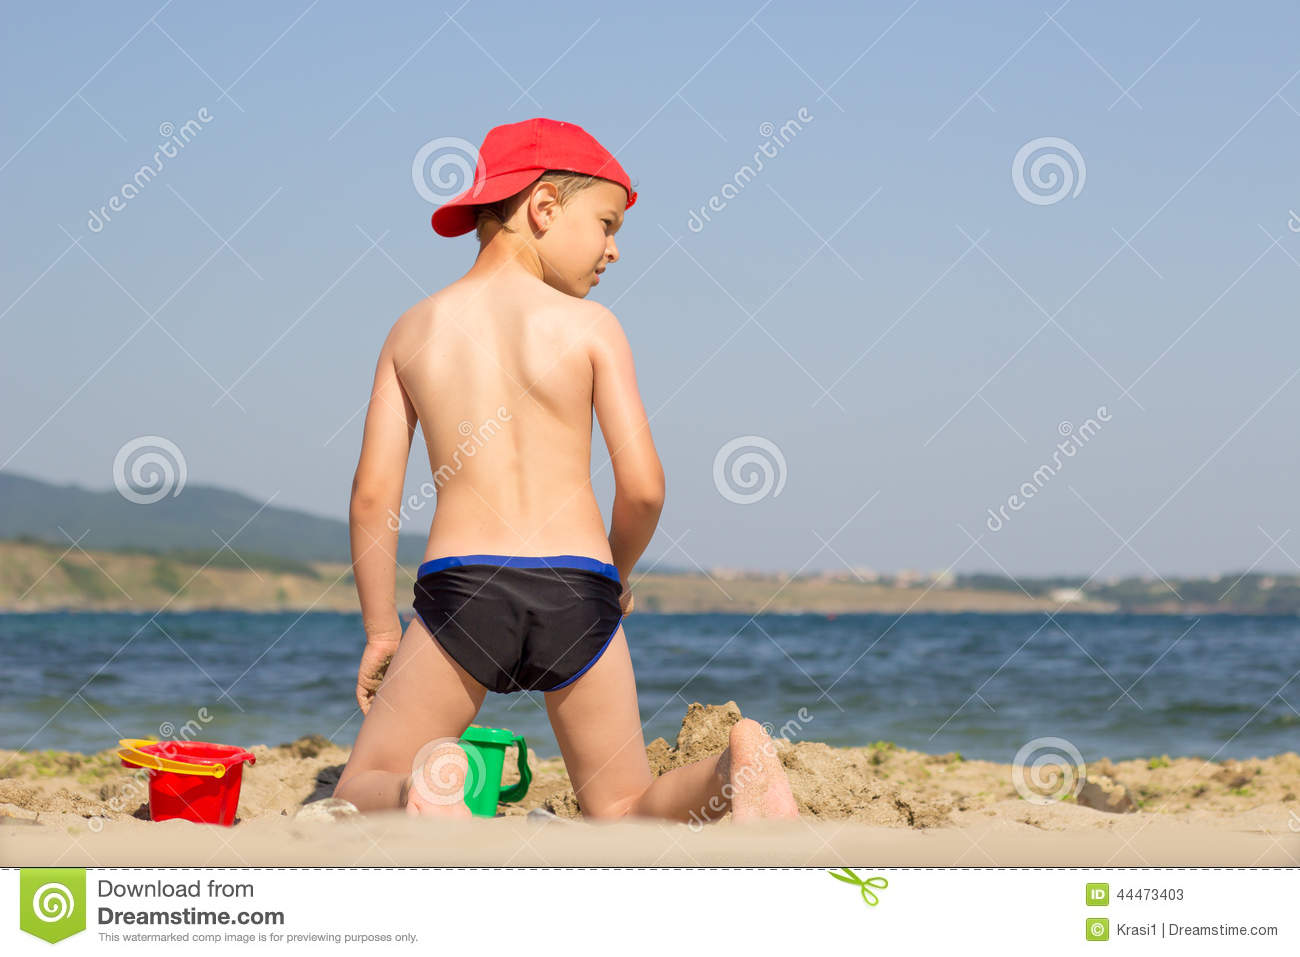 two boys having fun in the pool also you may like other